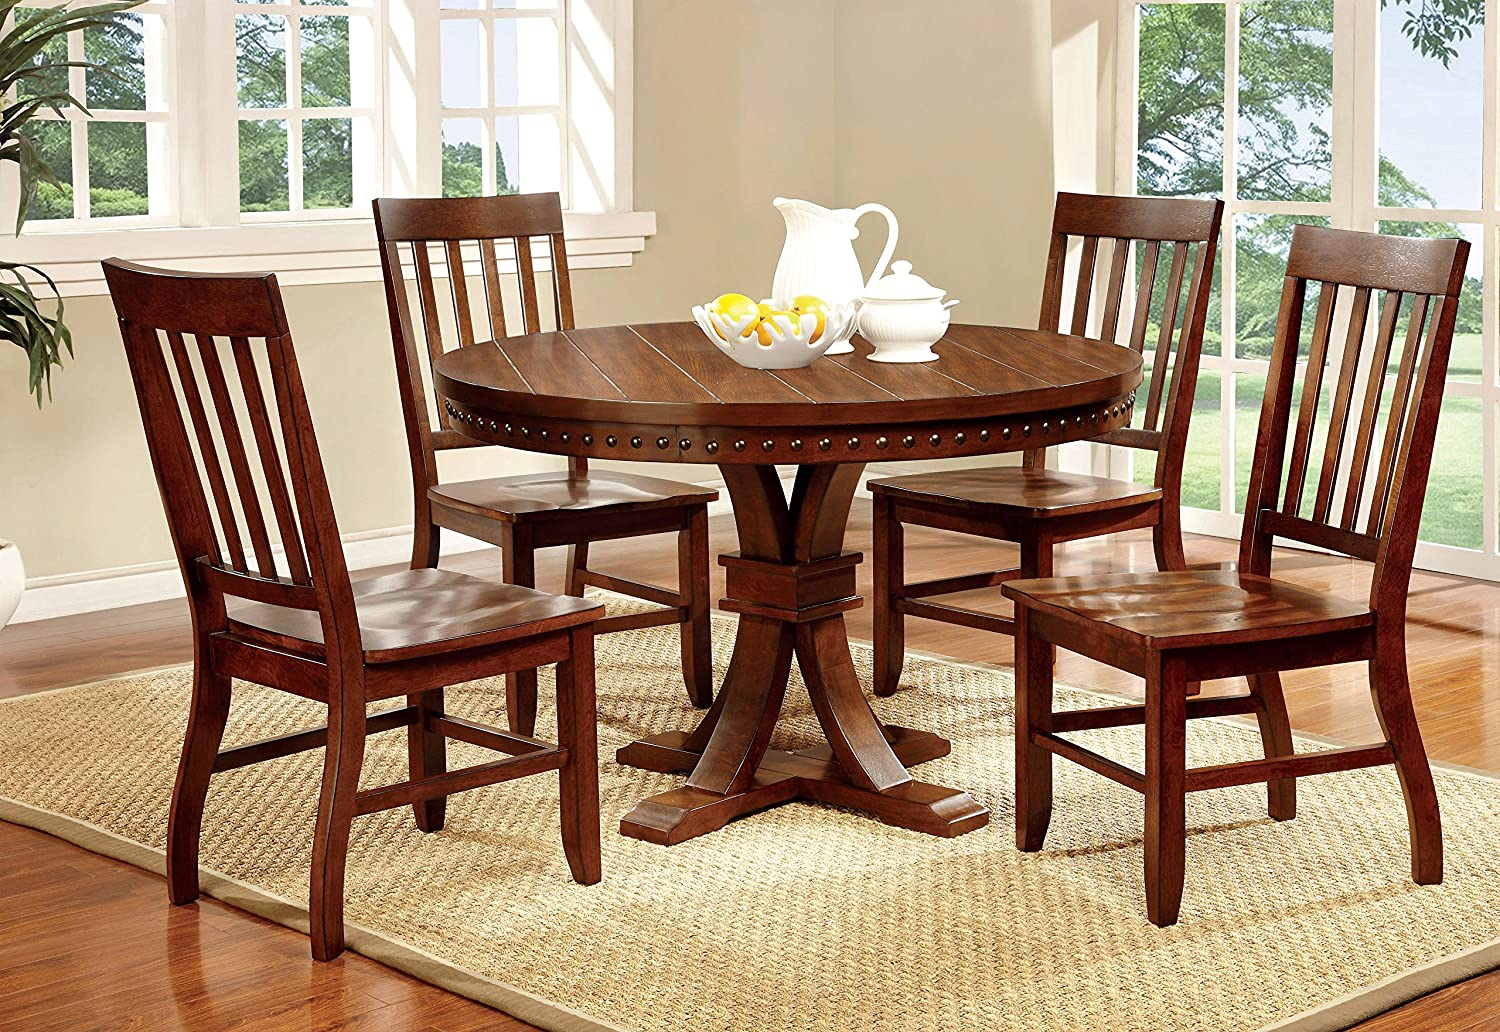 amazoncom furniture of america castile 5 piece transitional round dining table set dark oak table chair sets - Dining Table Round Wood